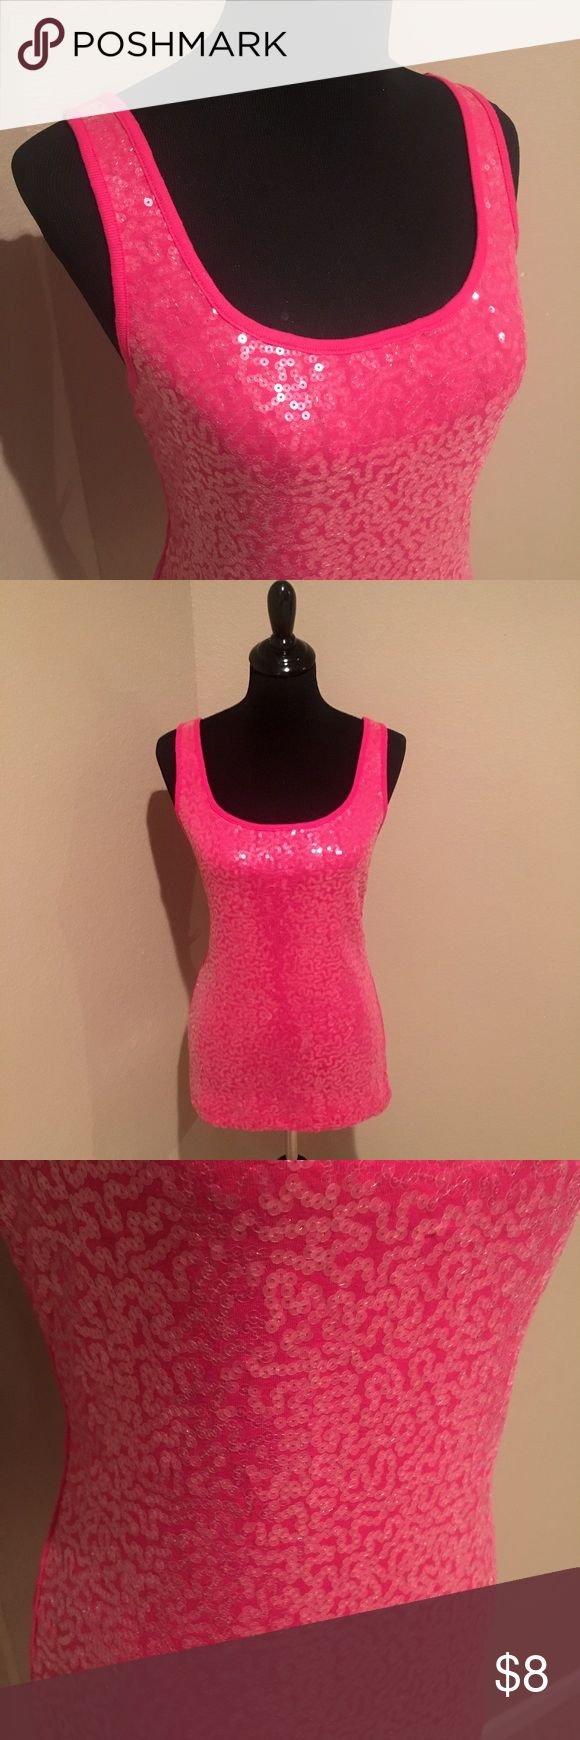 NWOT pink sequin tank top NWOT pink tank top with sequins all over front. Back is plain cotton. Scoop neck. Never worn. Super hot with jeans and heels for a night out😍 Old Navy Tops Tank Tops